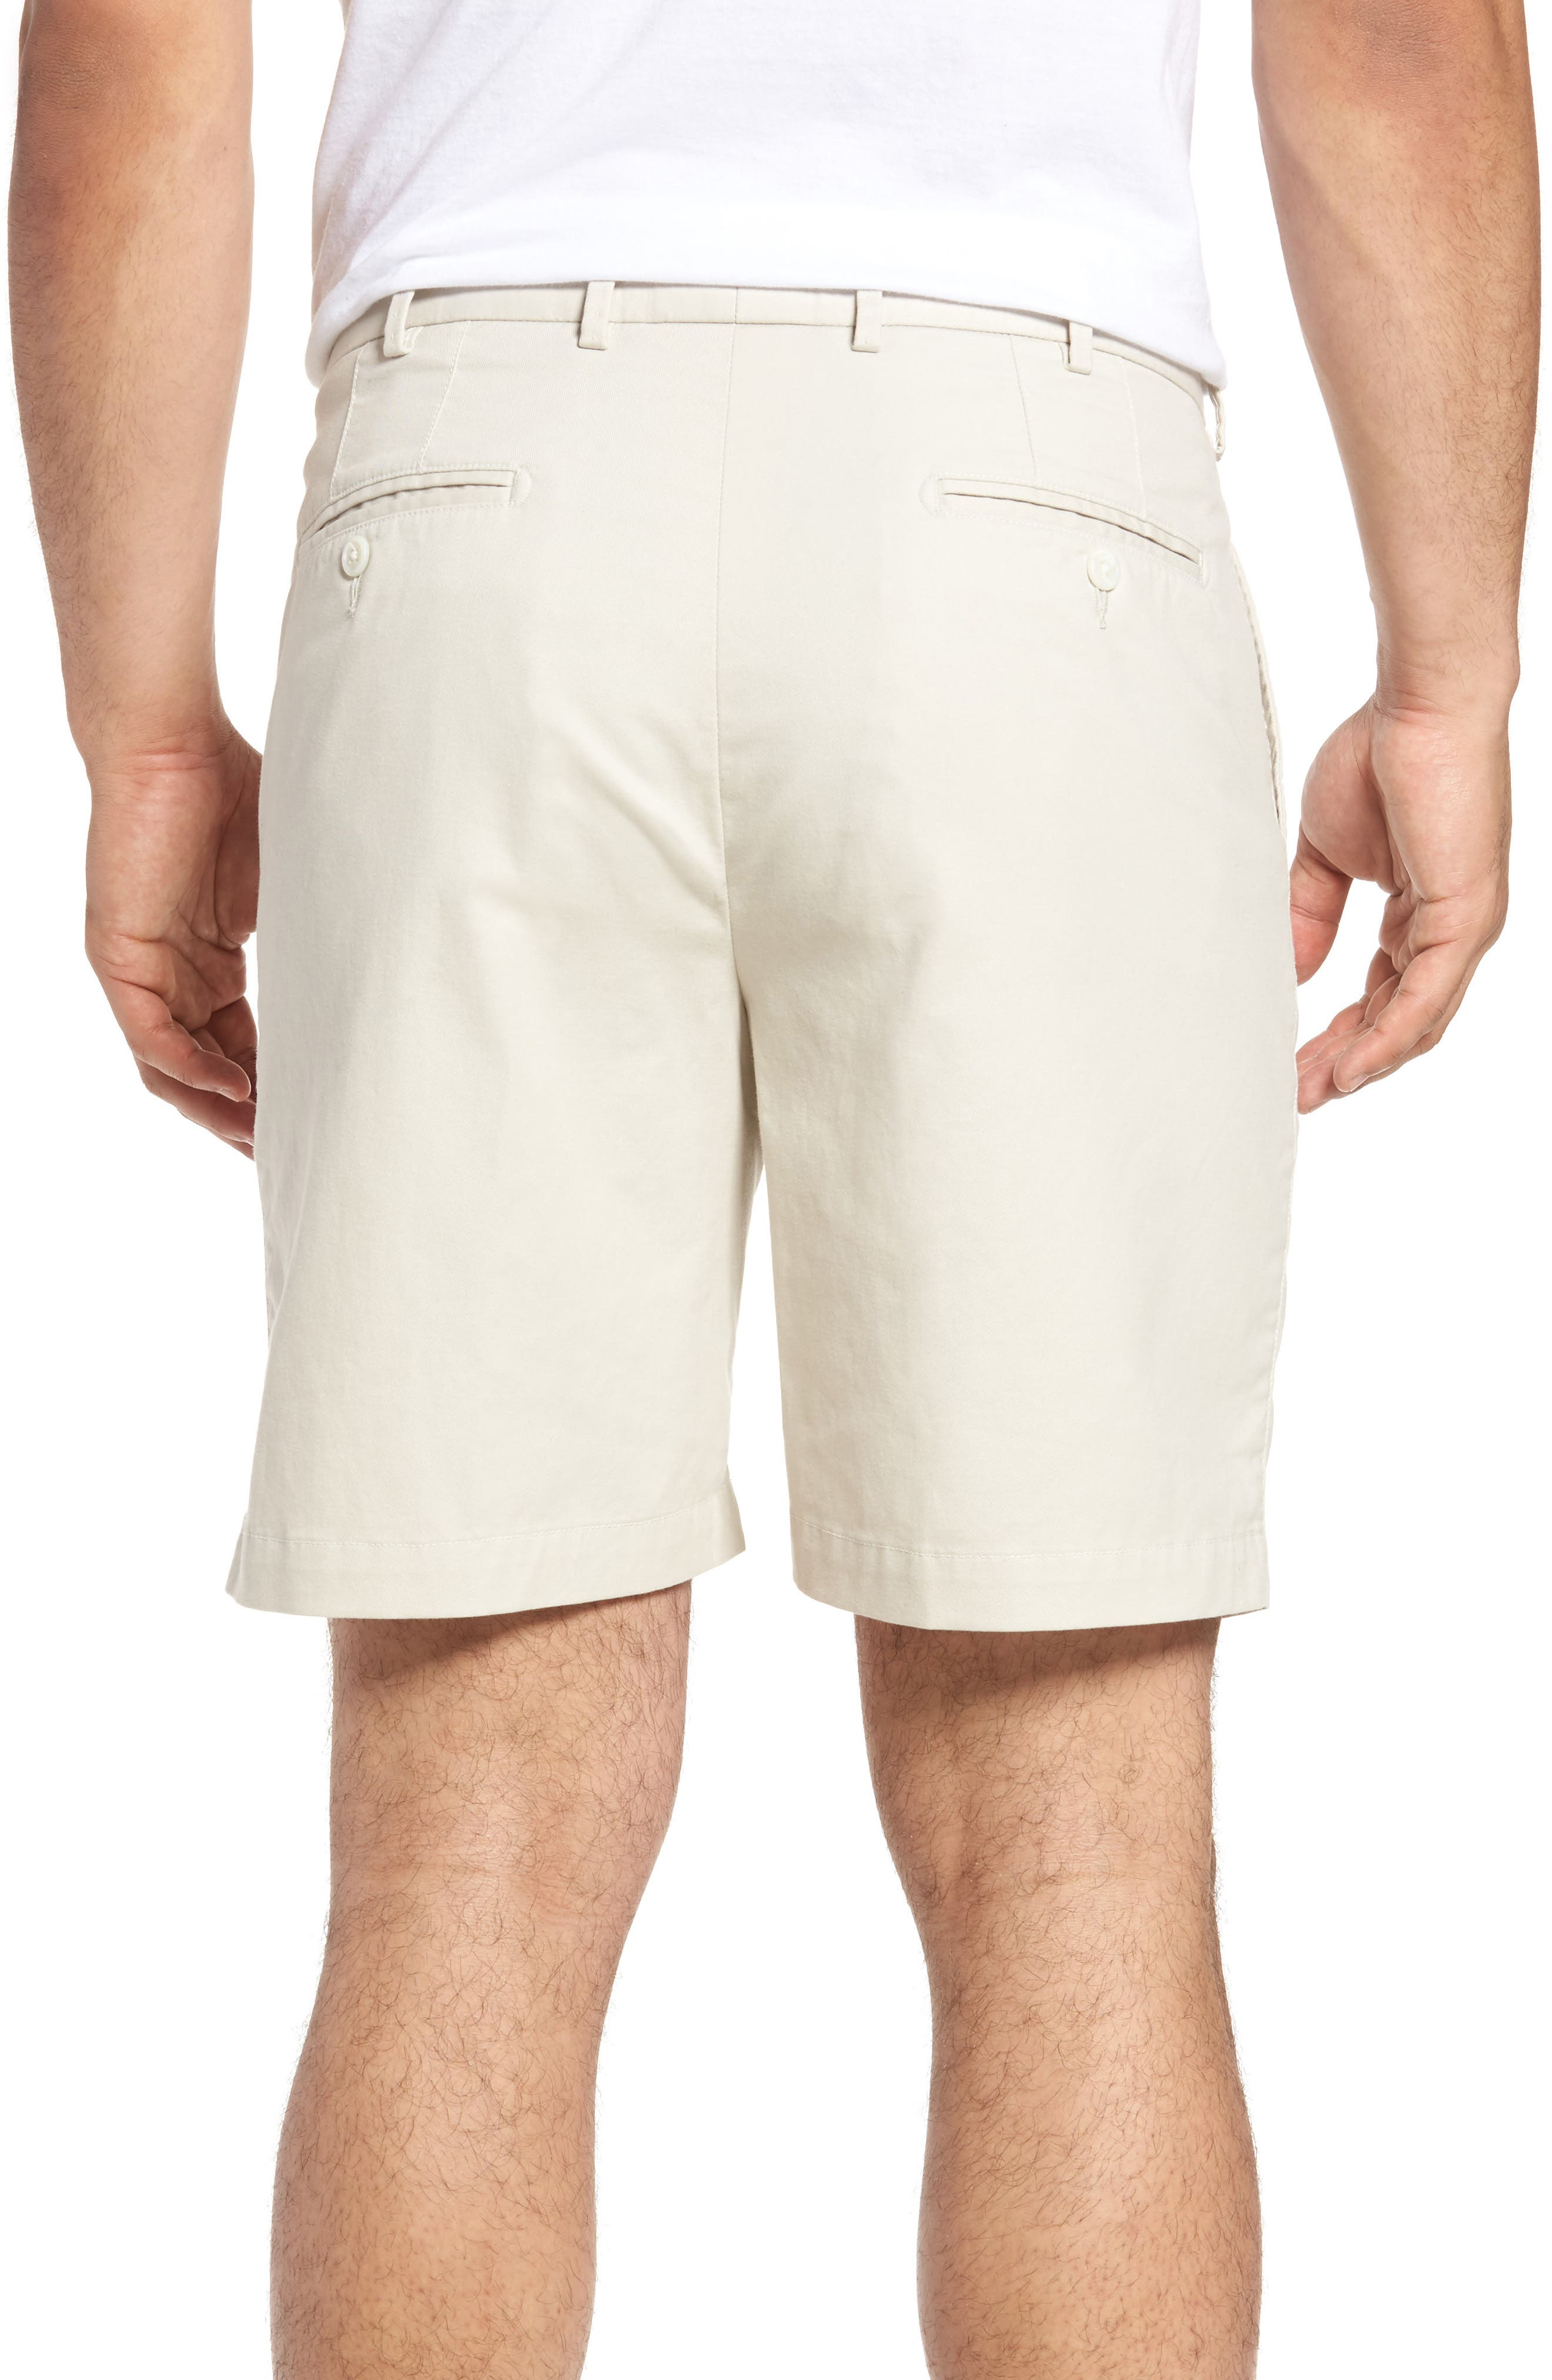 Alternate Image 2  - Peter Millar Soft Touch Twill Shorts (Tall)